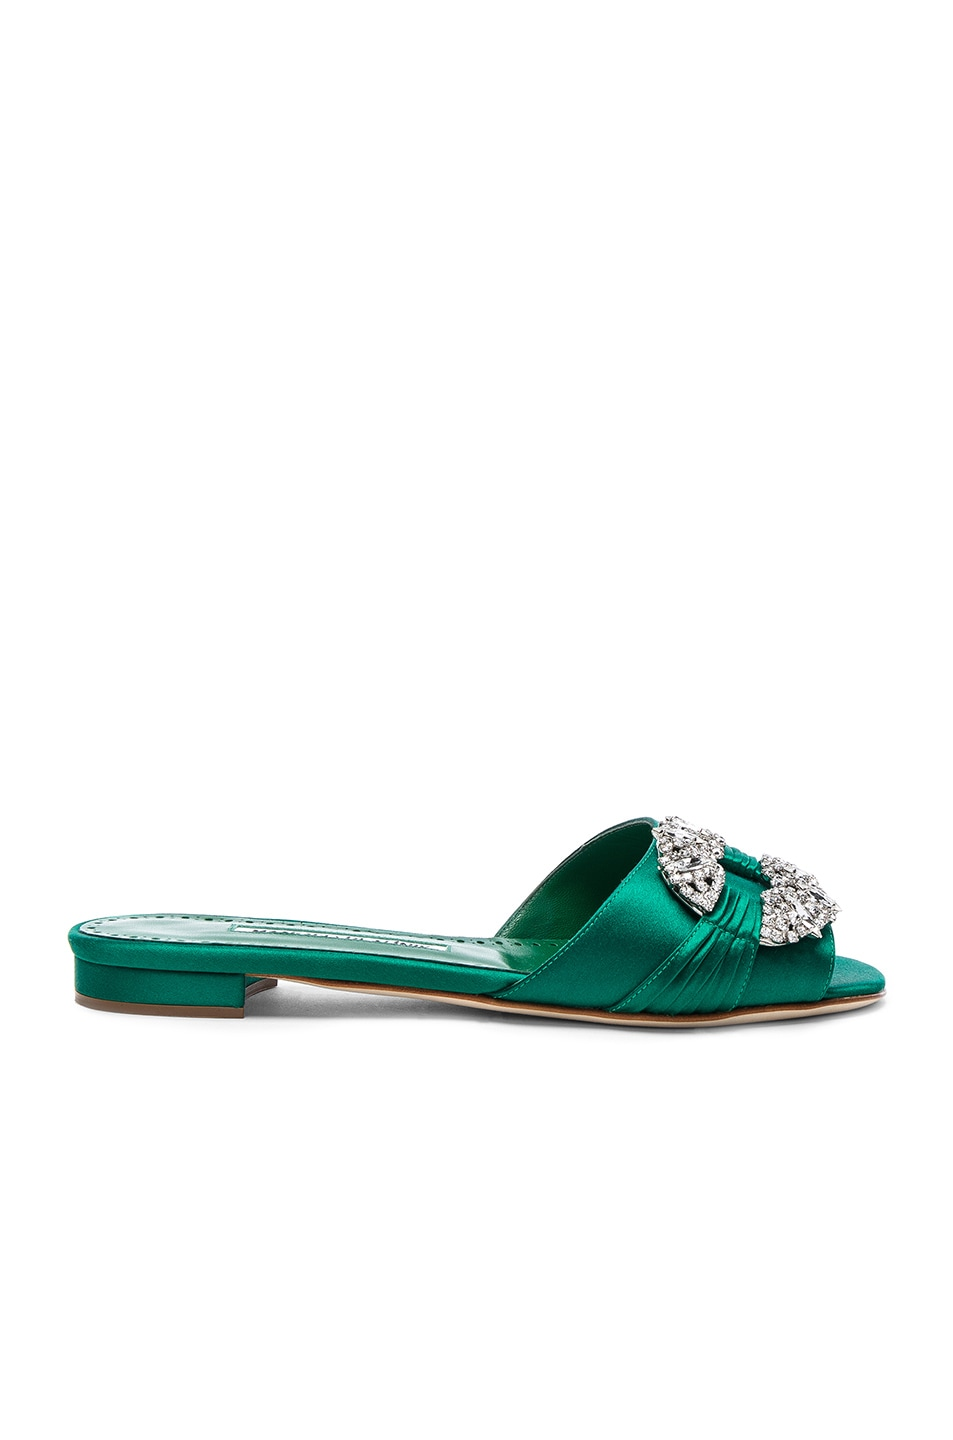 Image 1 of Manolo Blahnik Satin Pralina Slides in Green Satin